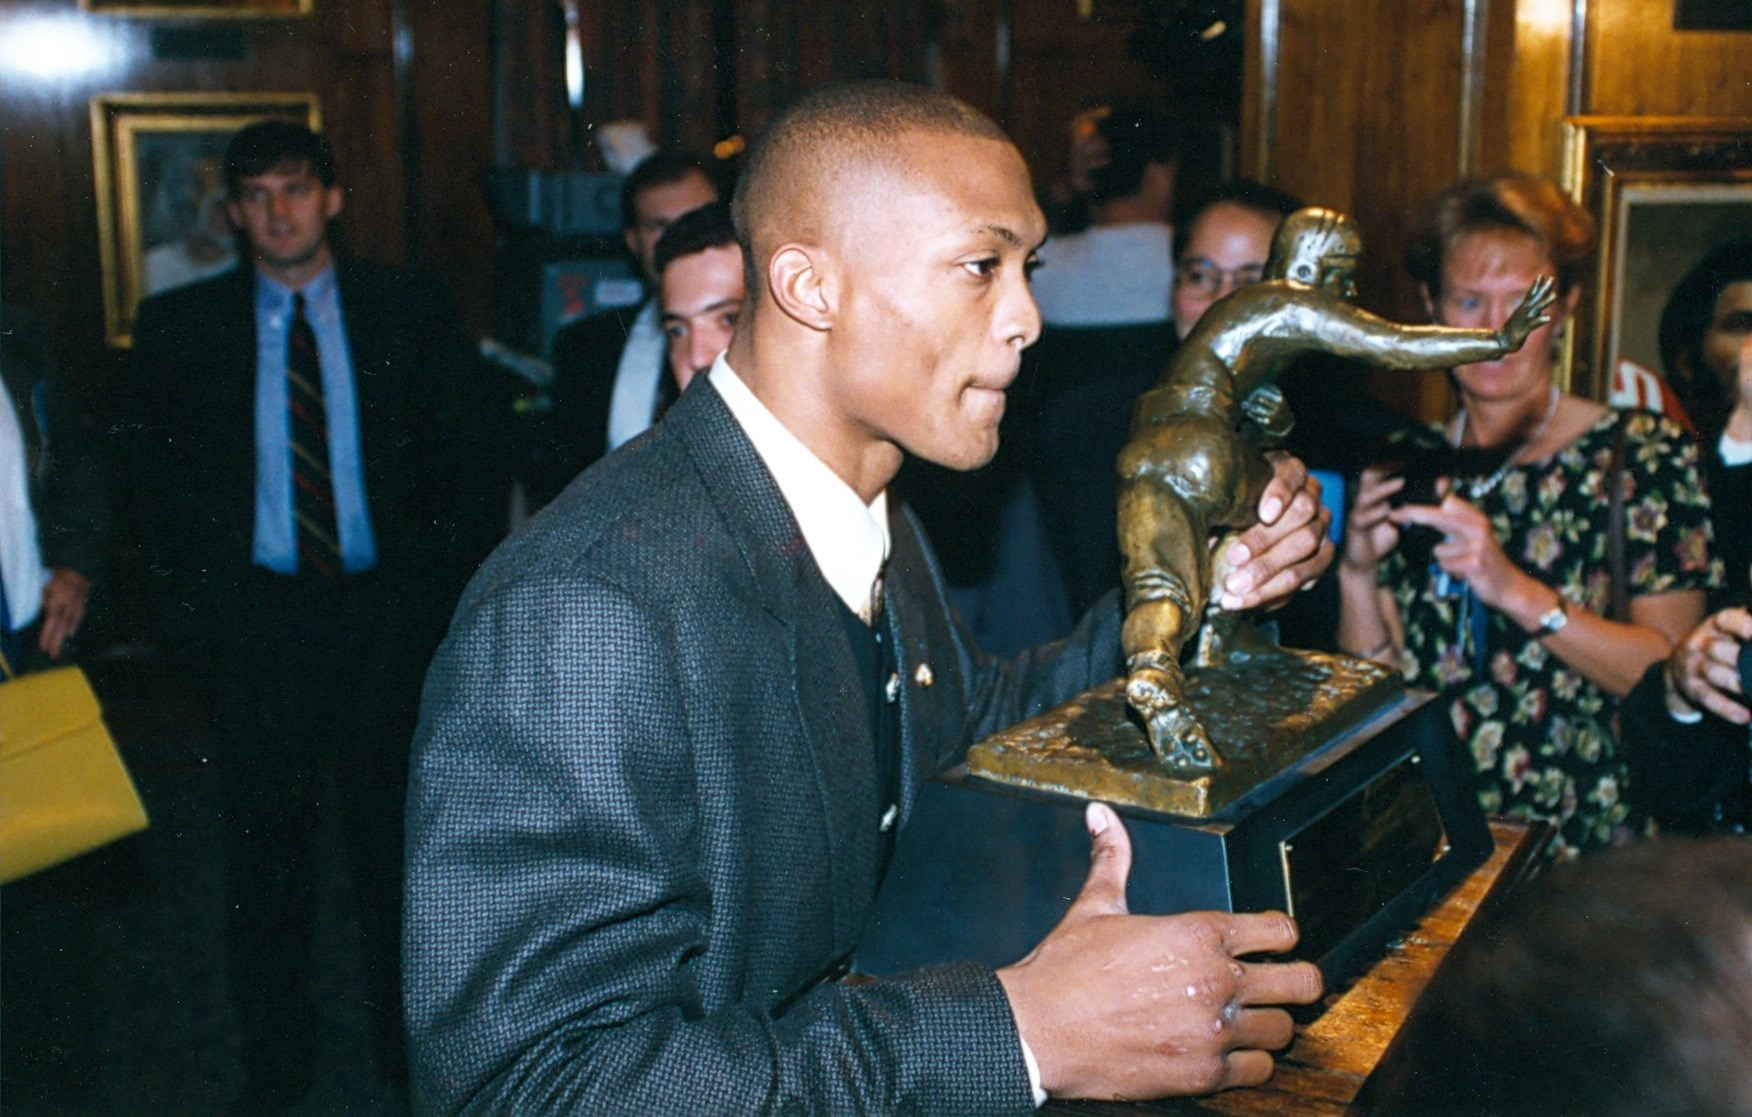 Eddie George 1995 Heisman Trophy winner